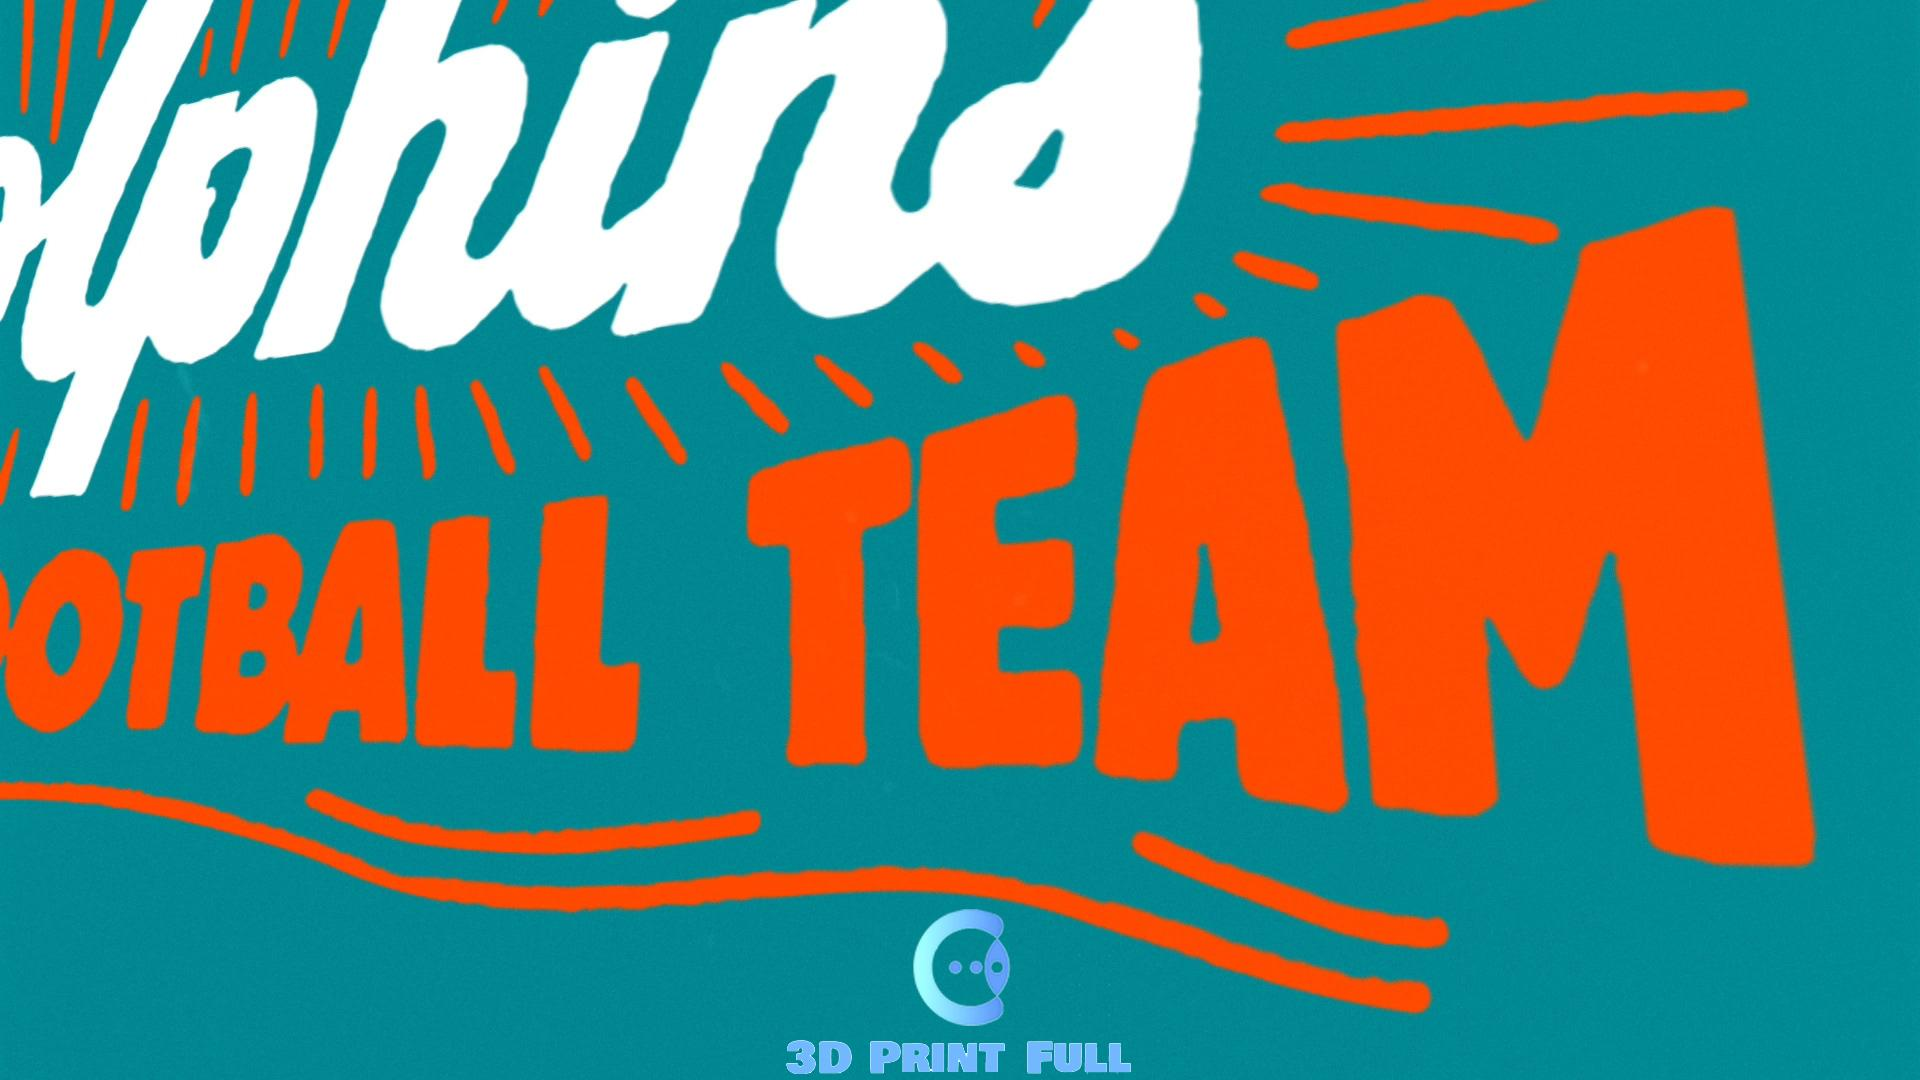 The Miami Dolphins Fight Song